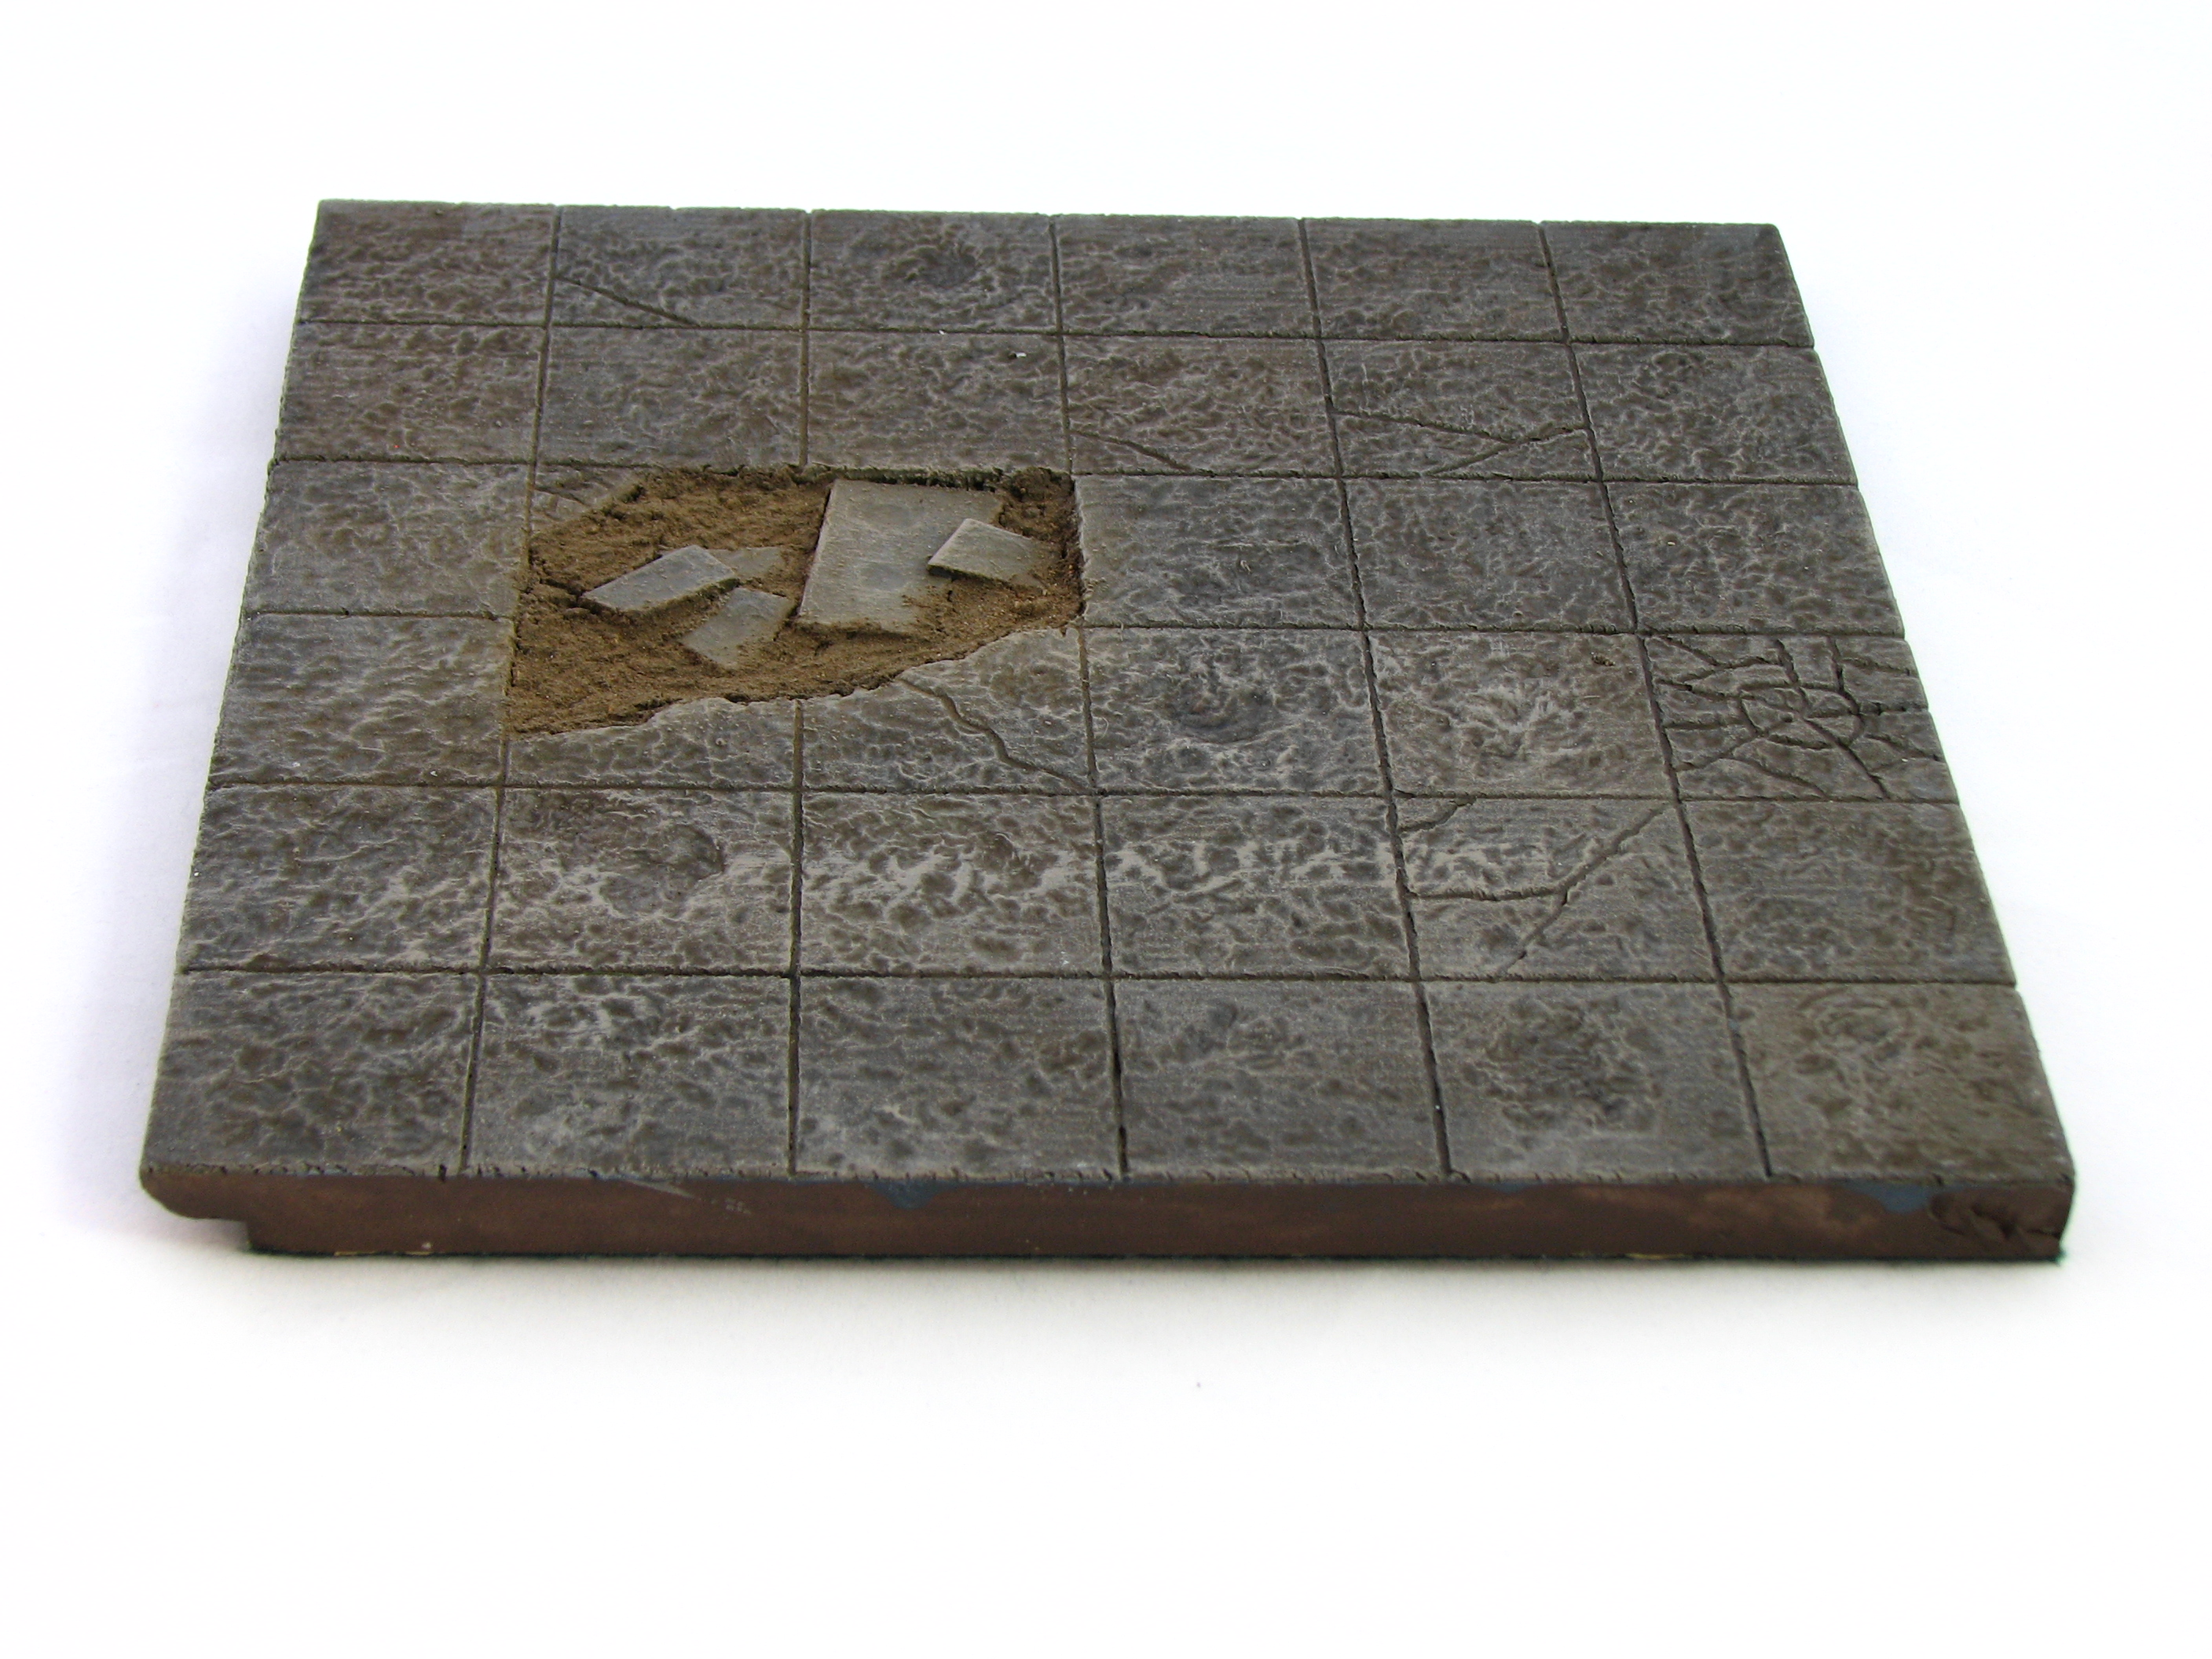 Remnants of the past – 2 5 dimensional Dungeon tiles